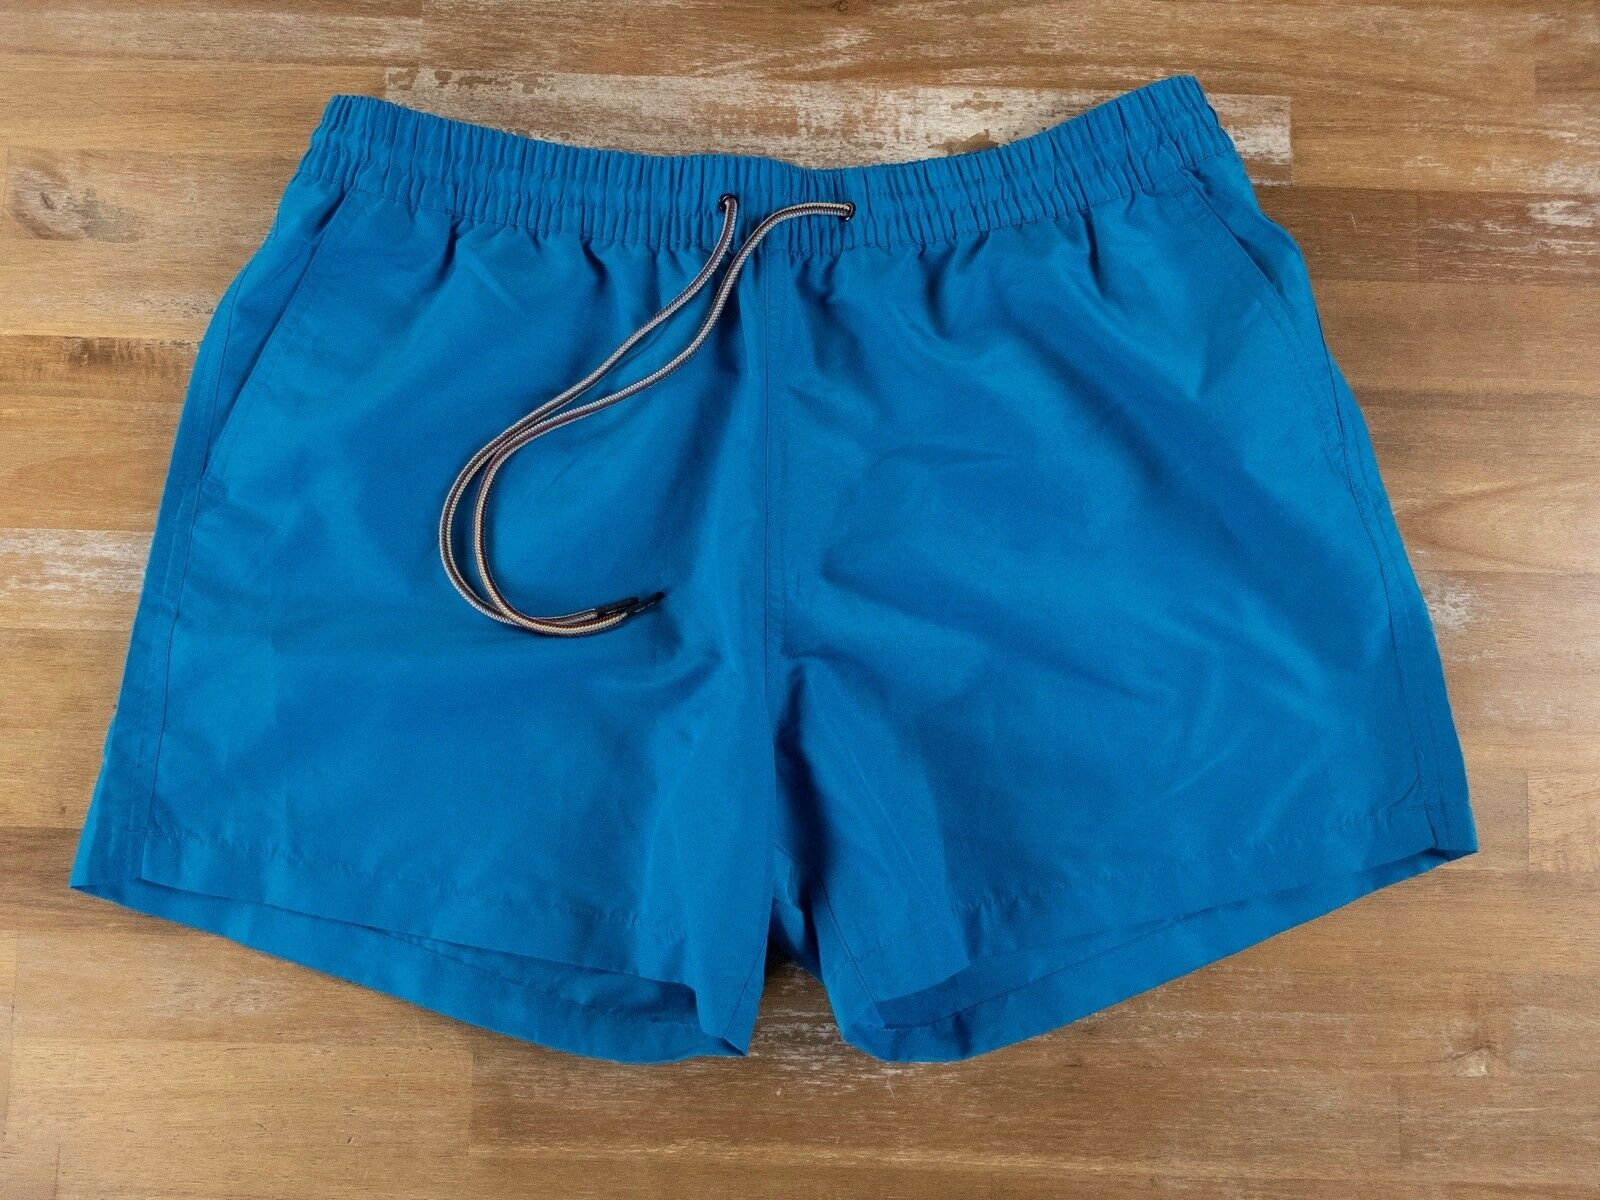 PAUL SMITH solid bluee swim shorts authentic - Size XL - NWOT